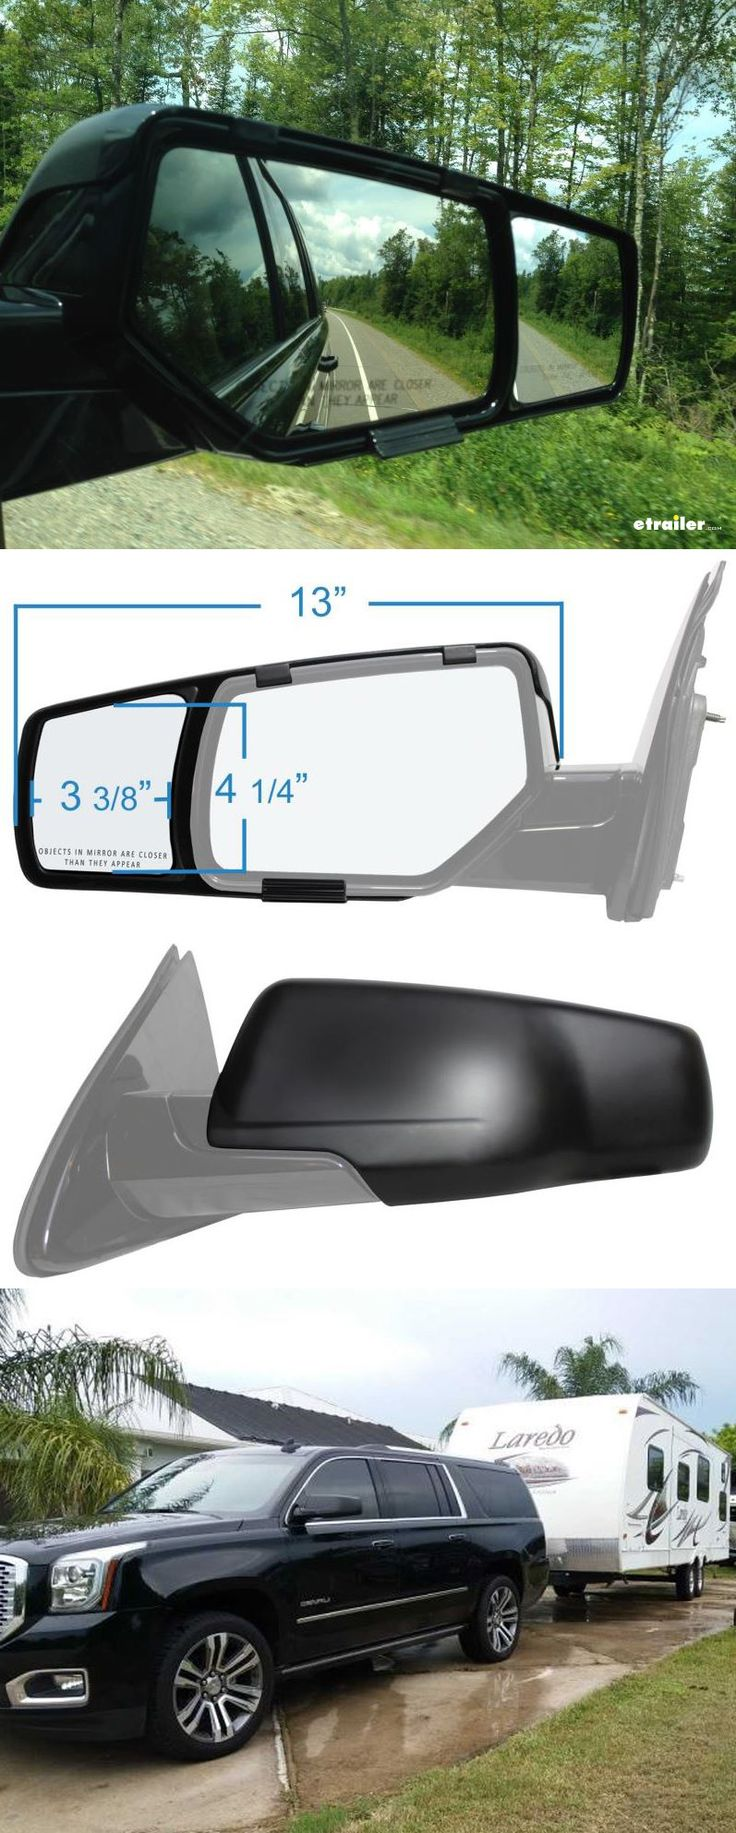 Get a complete rear view while towing your camper or trailer with custom fit towing mirrors